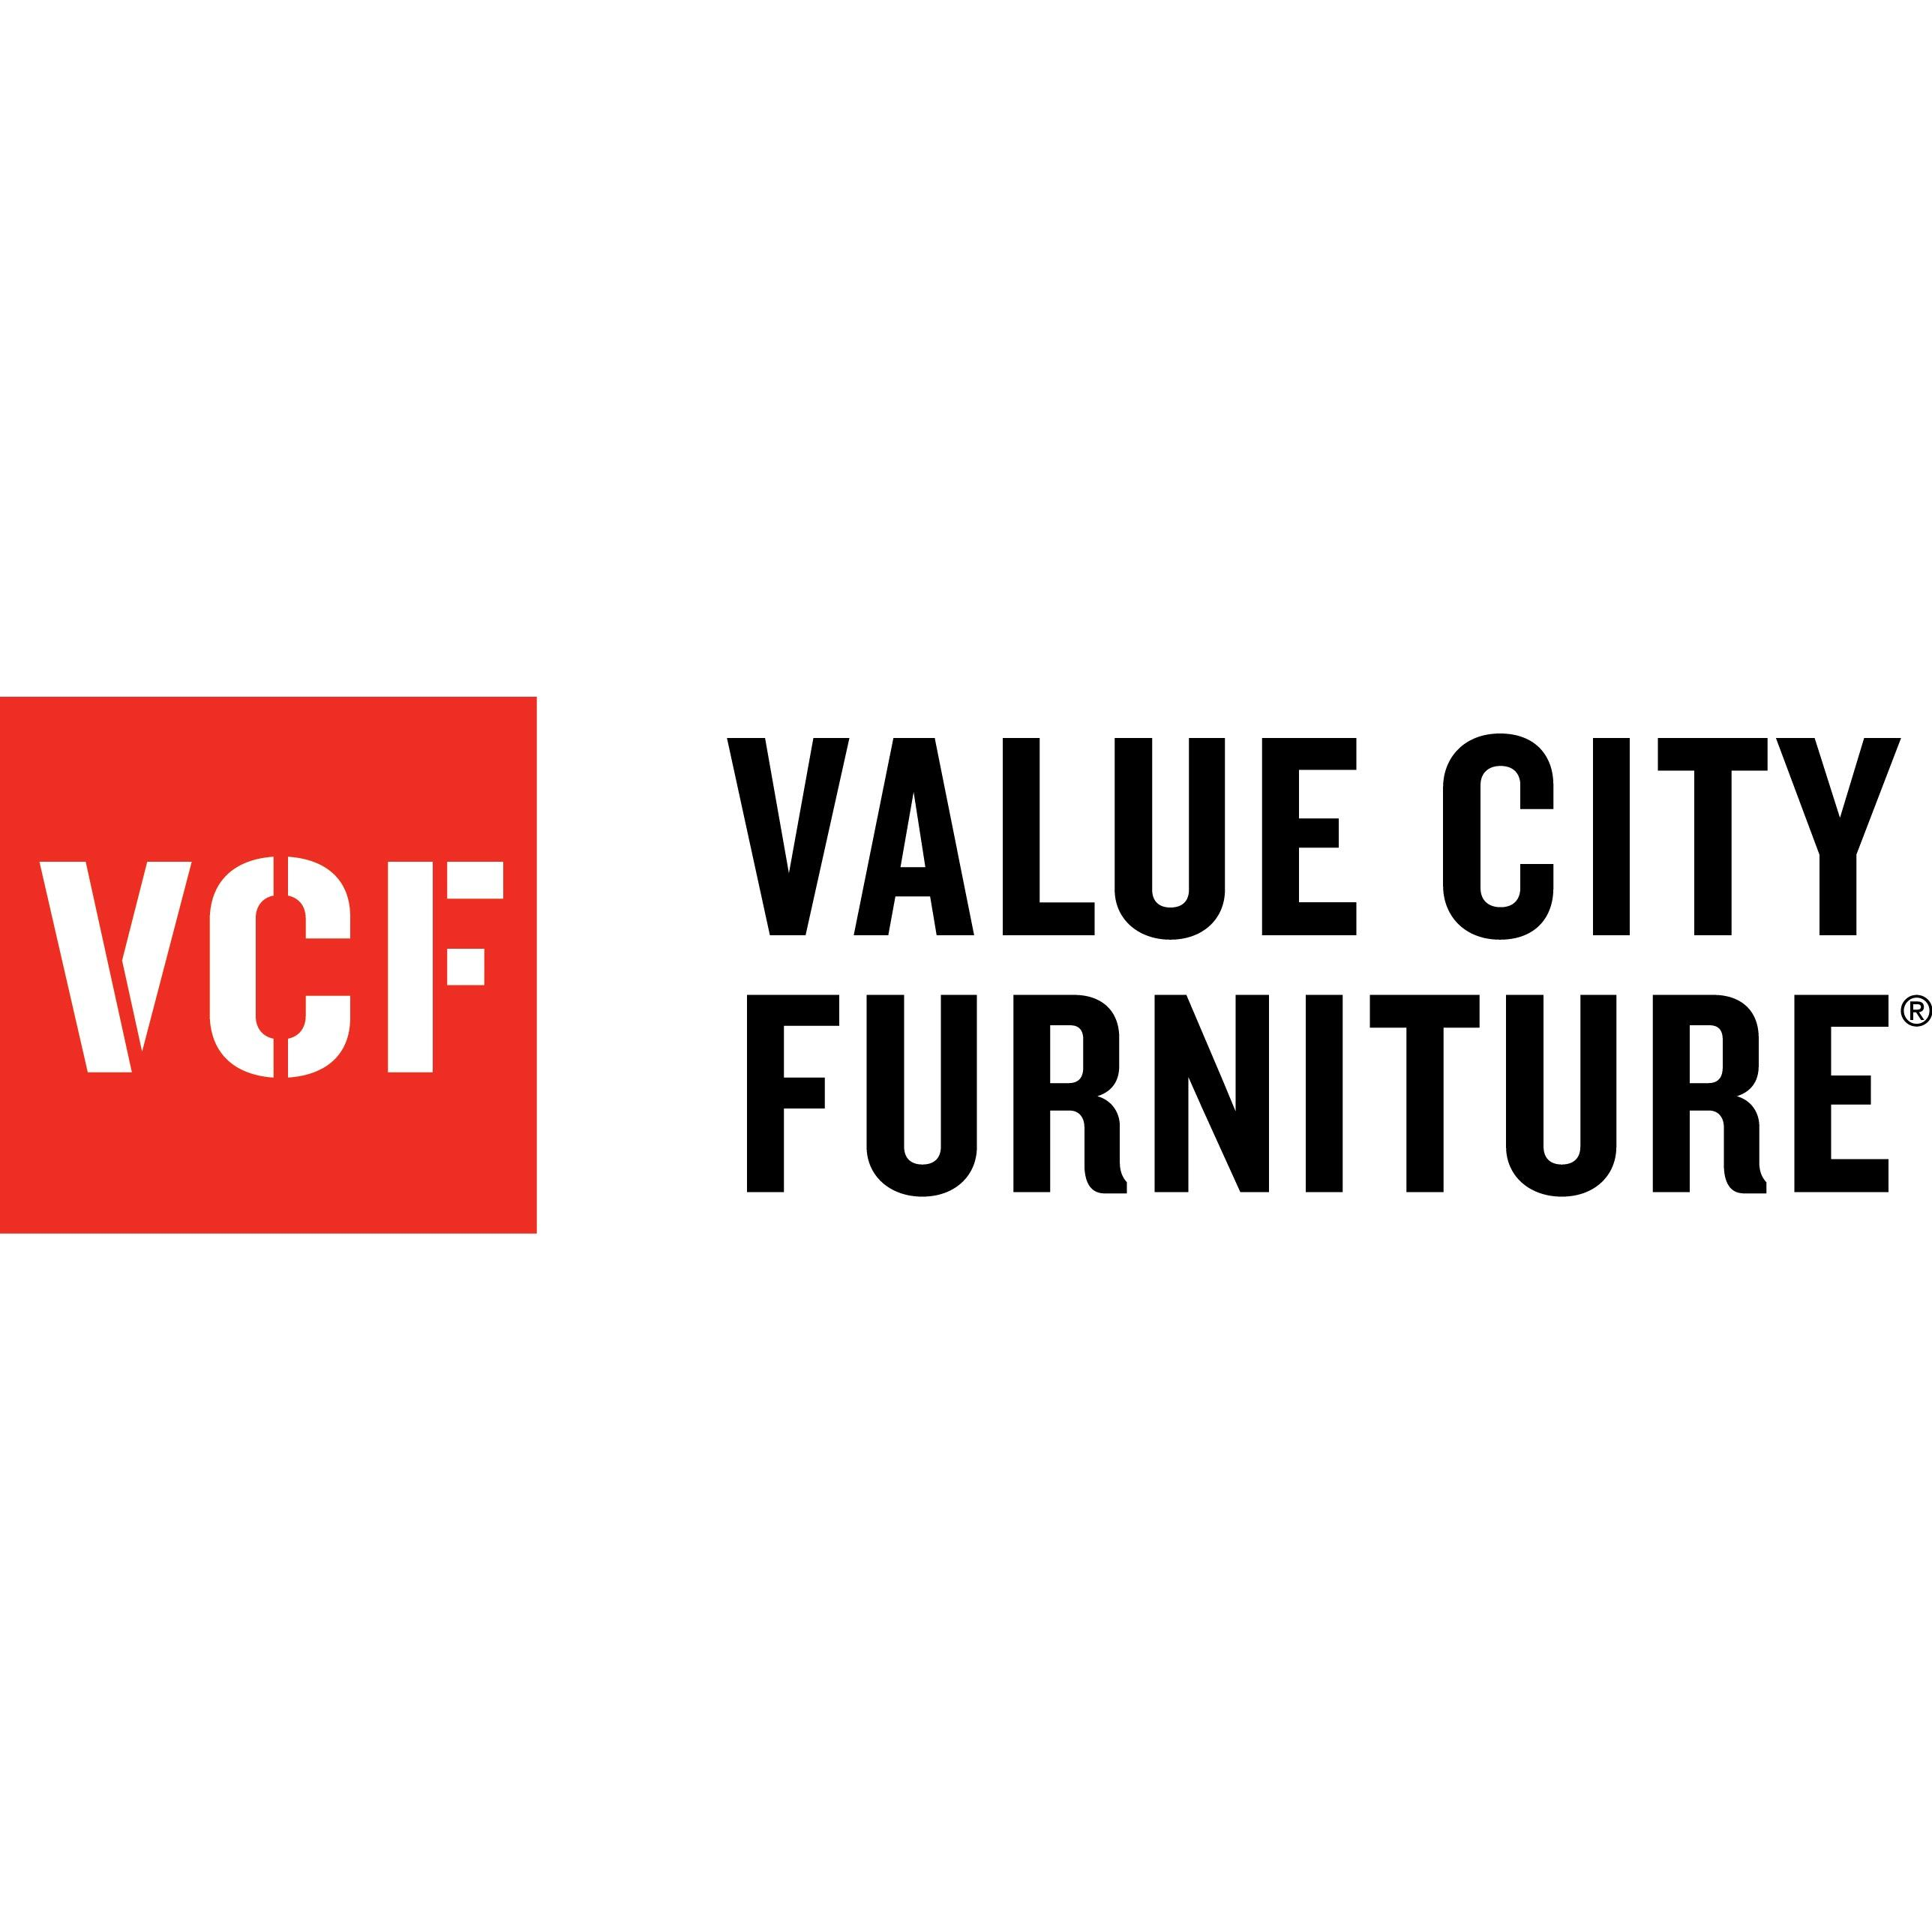 Value city furniture in amherst ny furniture stores for Value city furniture amherst